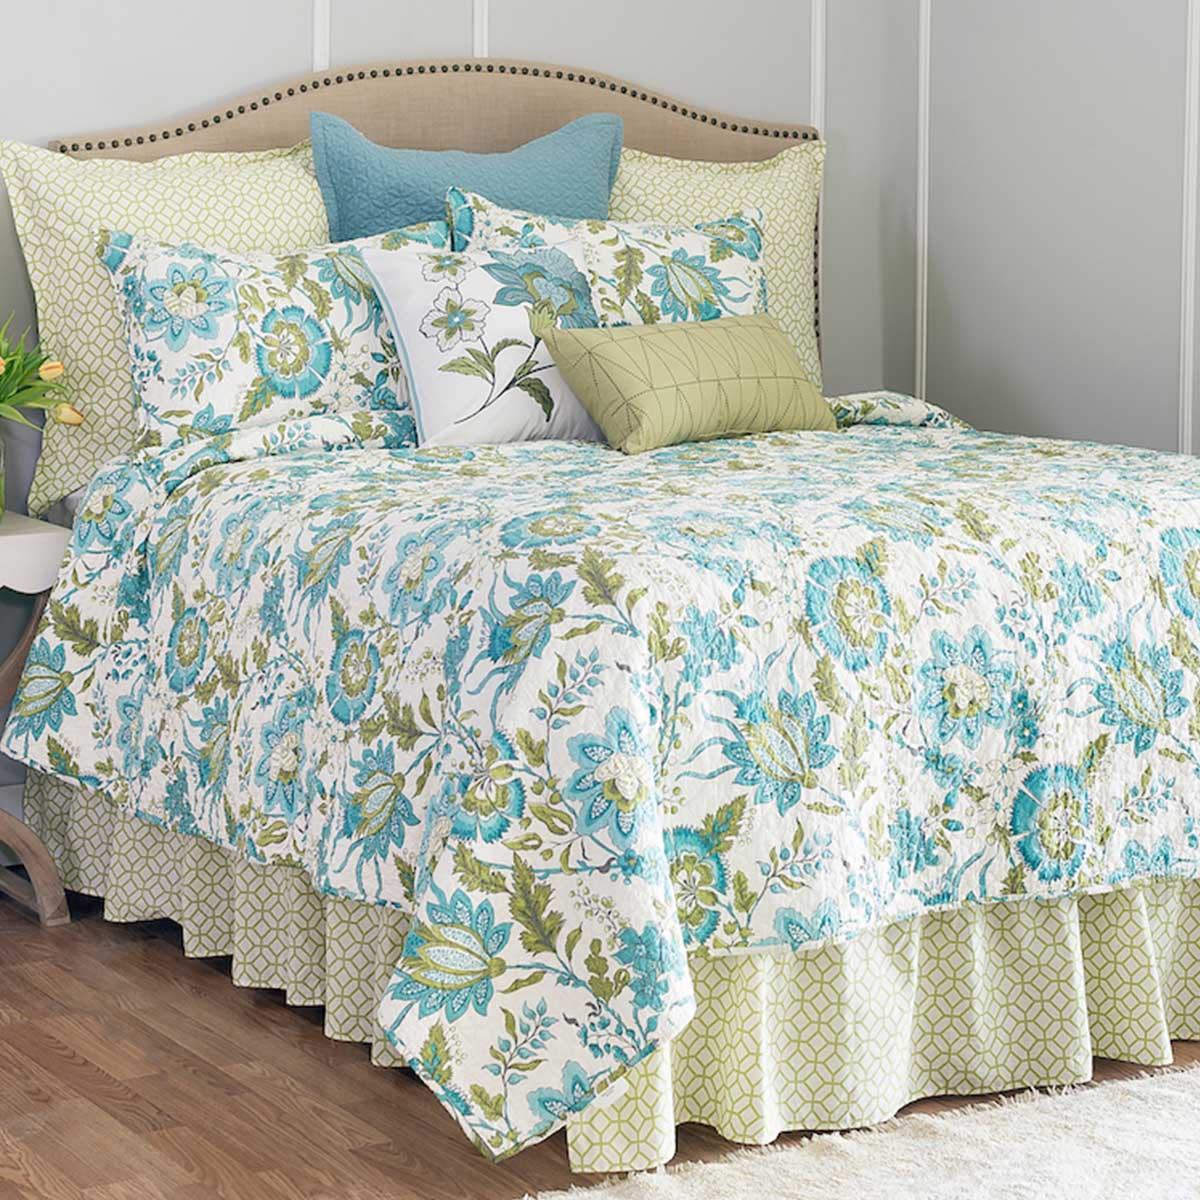 Duvet And Comforter Sets Bedding Duvet Covers Comforter Sets Bedspreads C F Home